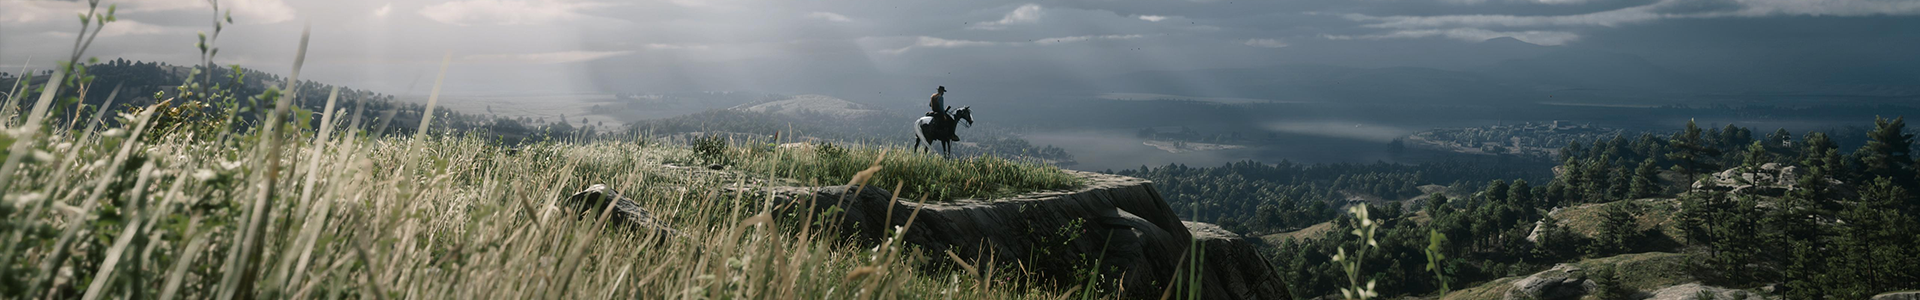 Banner media of Red Dead Redemption 2 video game.